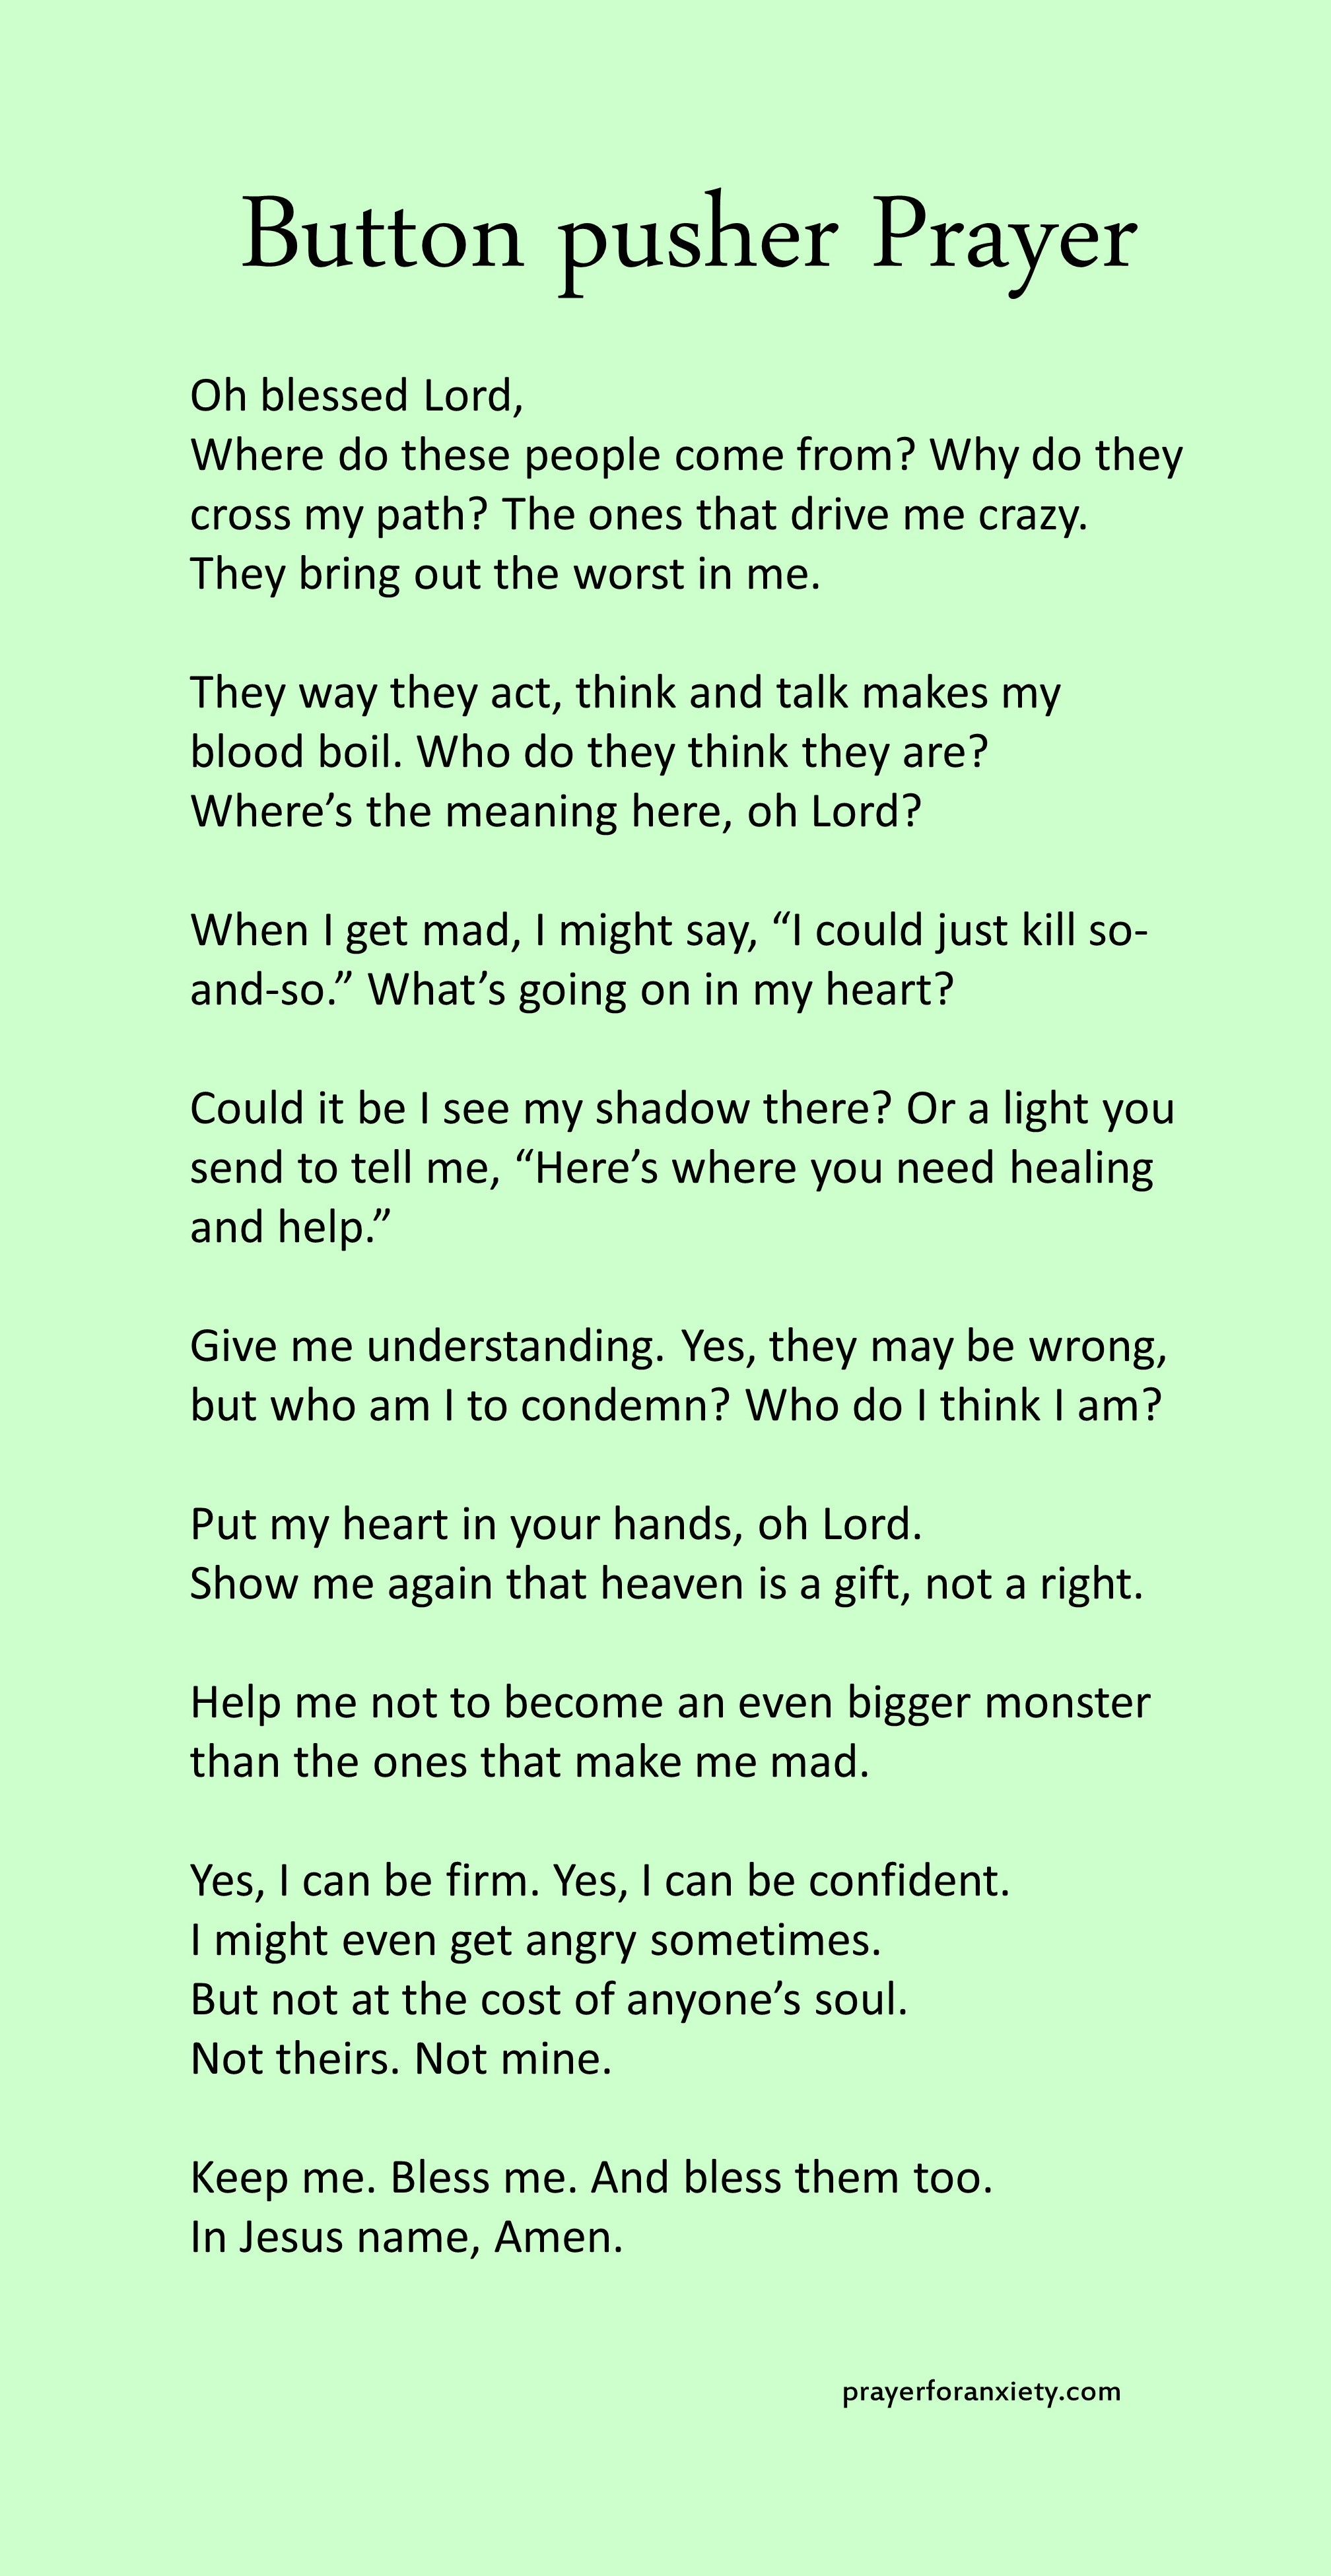 This prayer help you understand how to handle people that bother you. It all depends on the right perspective.